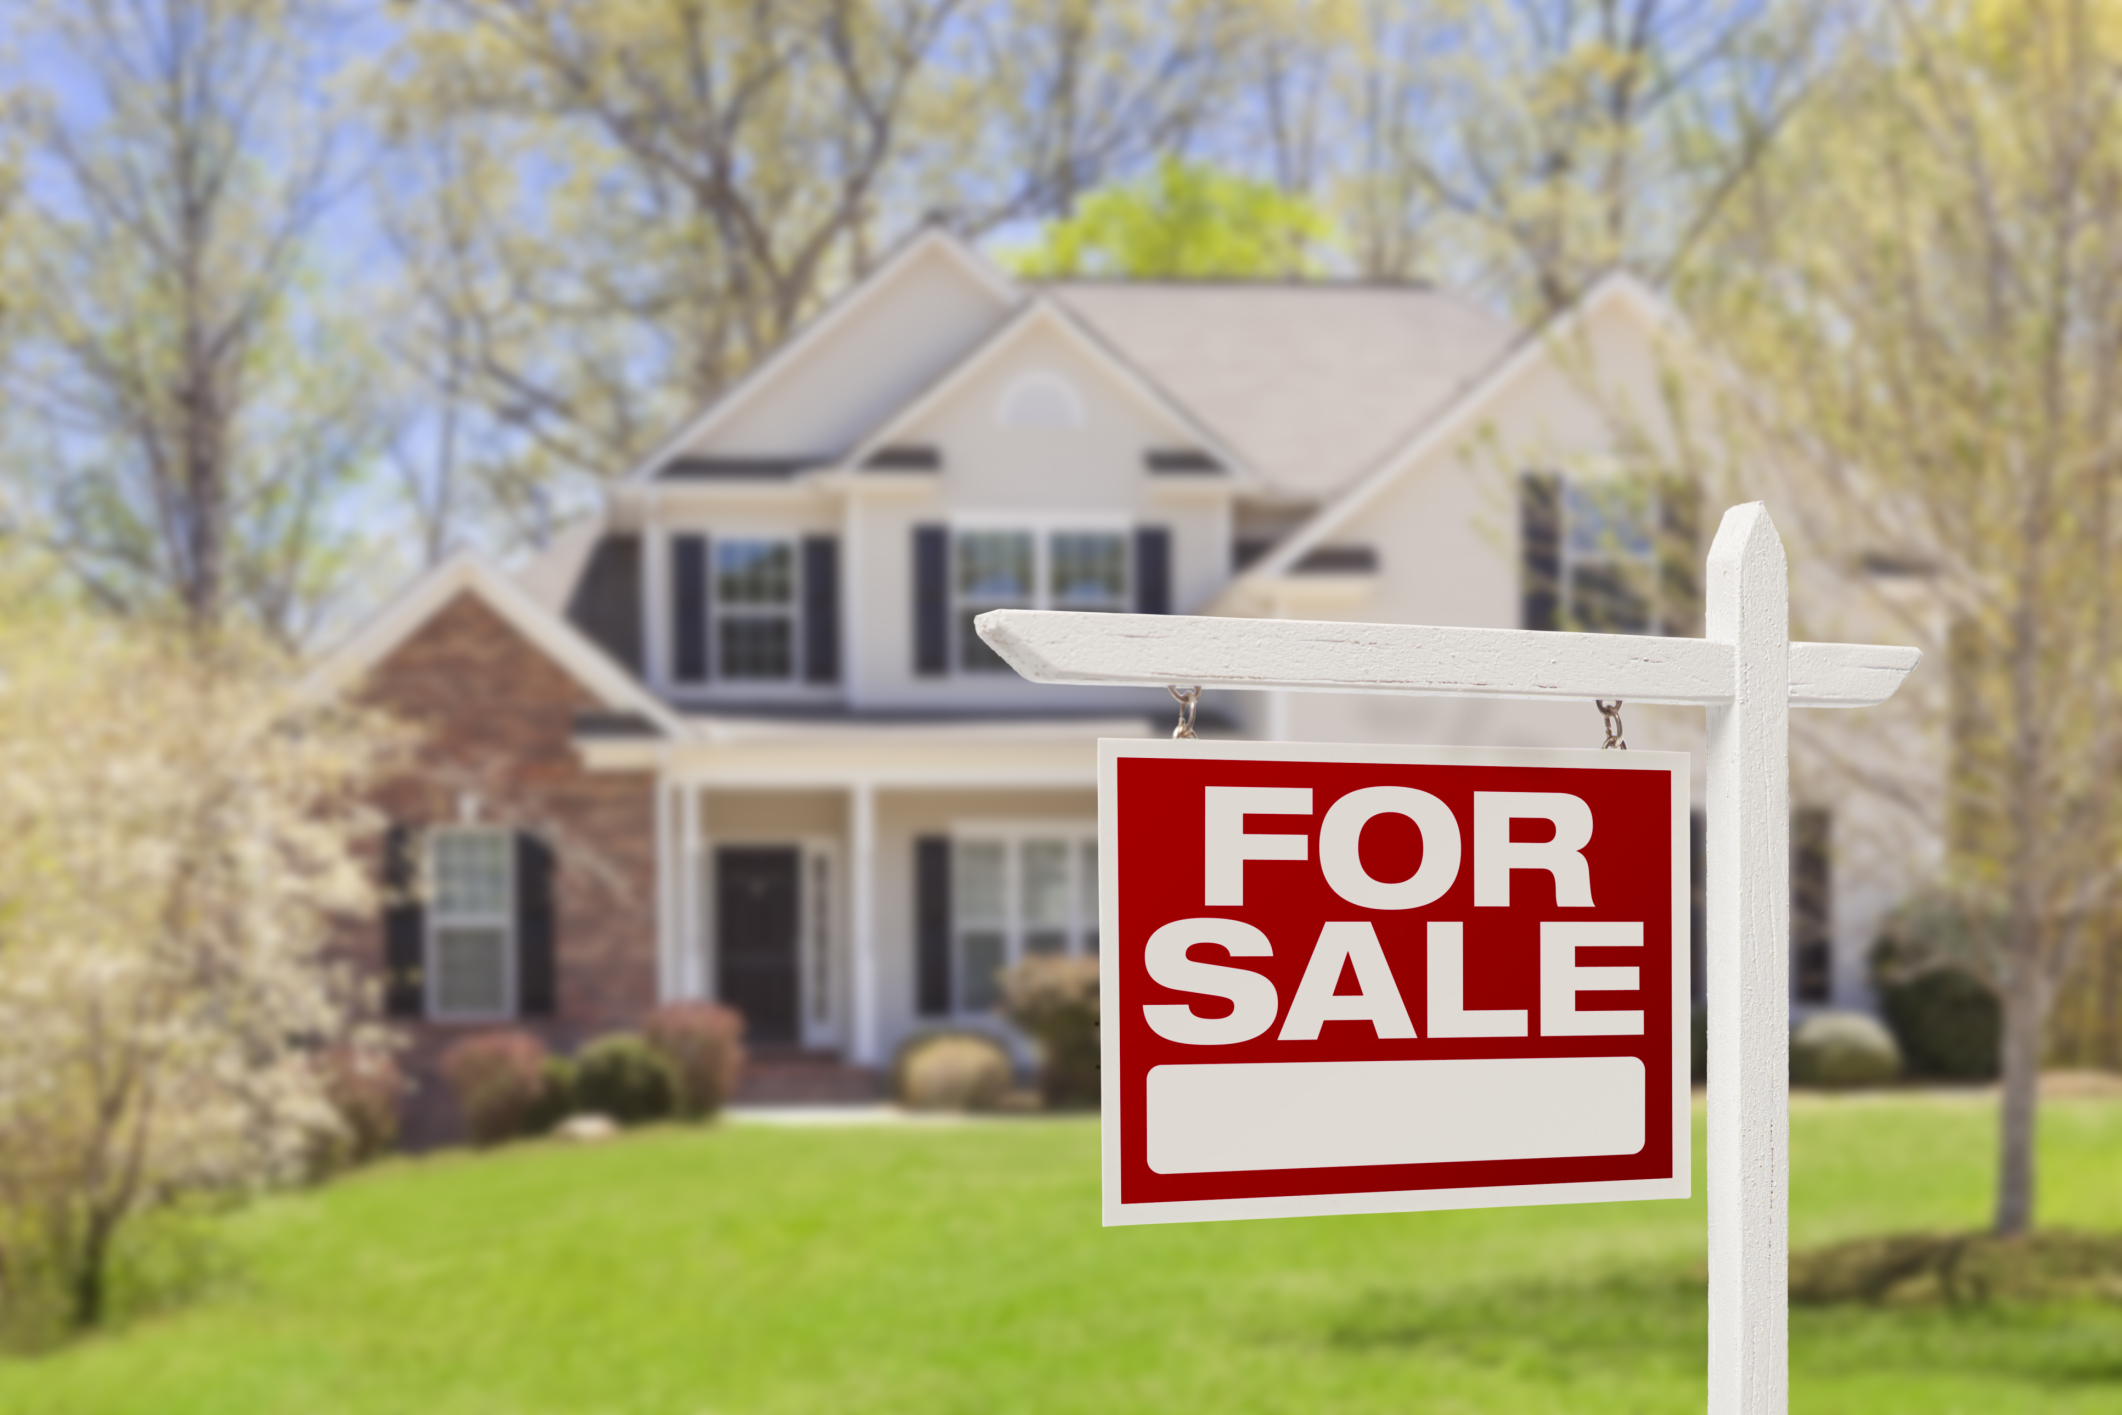 How To Sell My House Fast Columbus? – The Benefits Of Using Professional Real Estate Investors